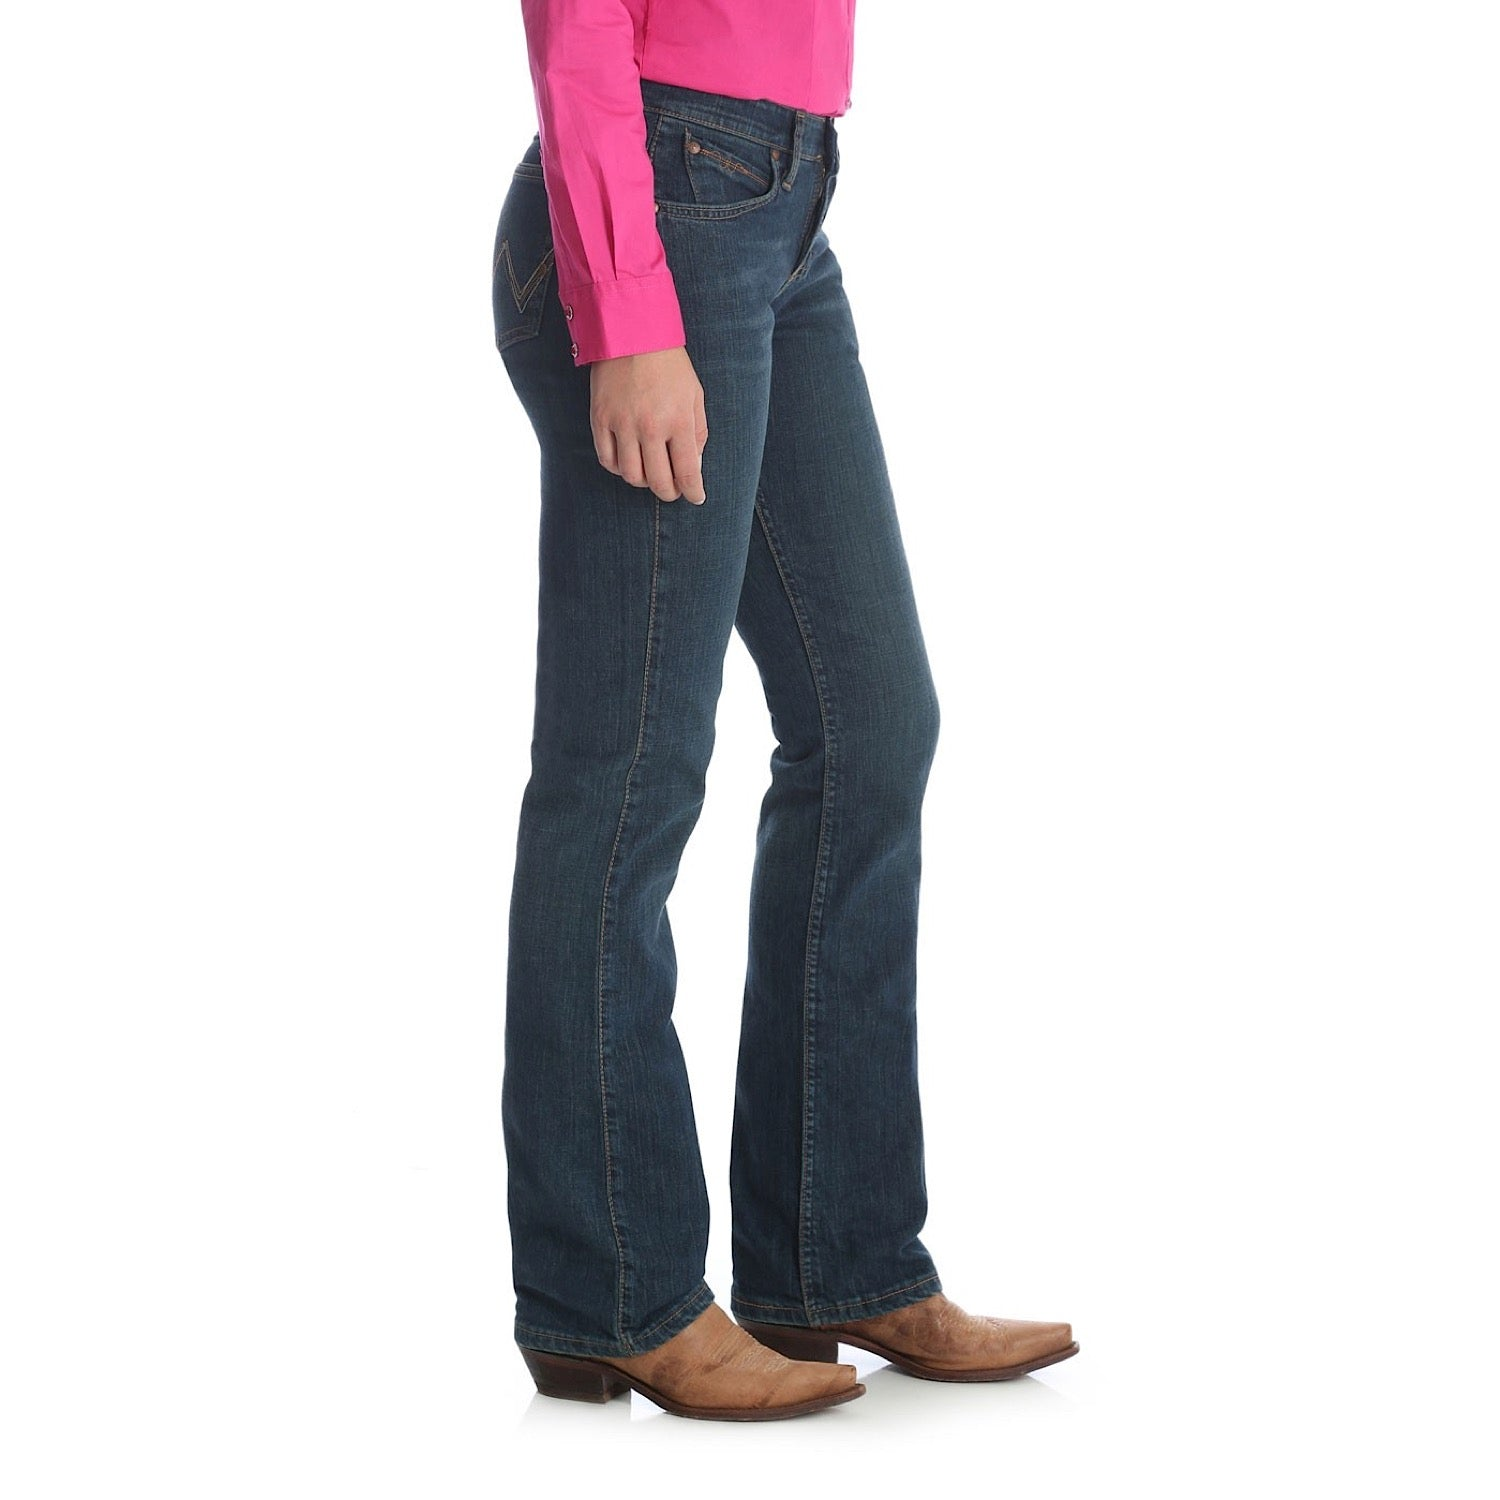 409d3a37176 ... Ladies Q-Baby Ultimate Riding Jean Sits Below Waist